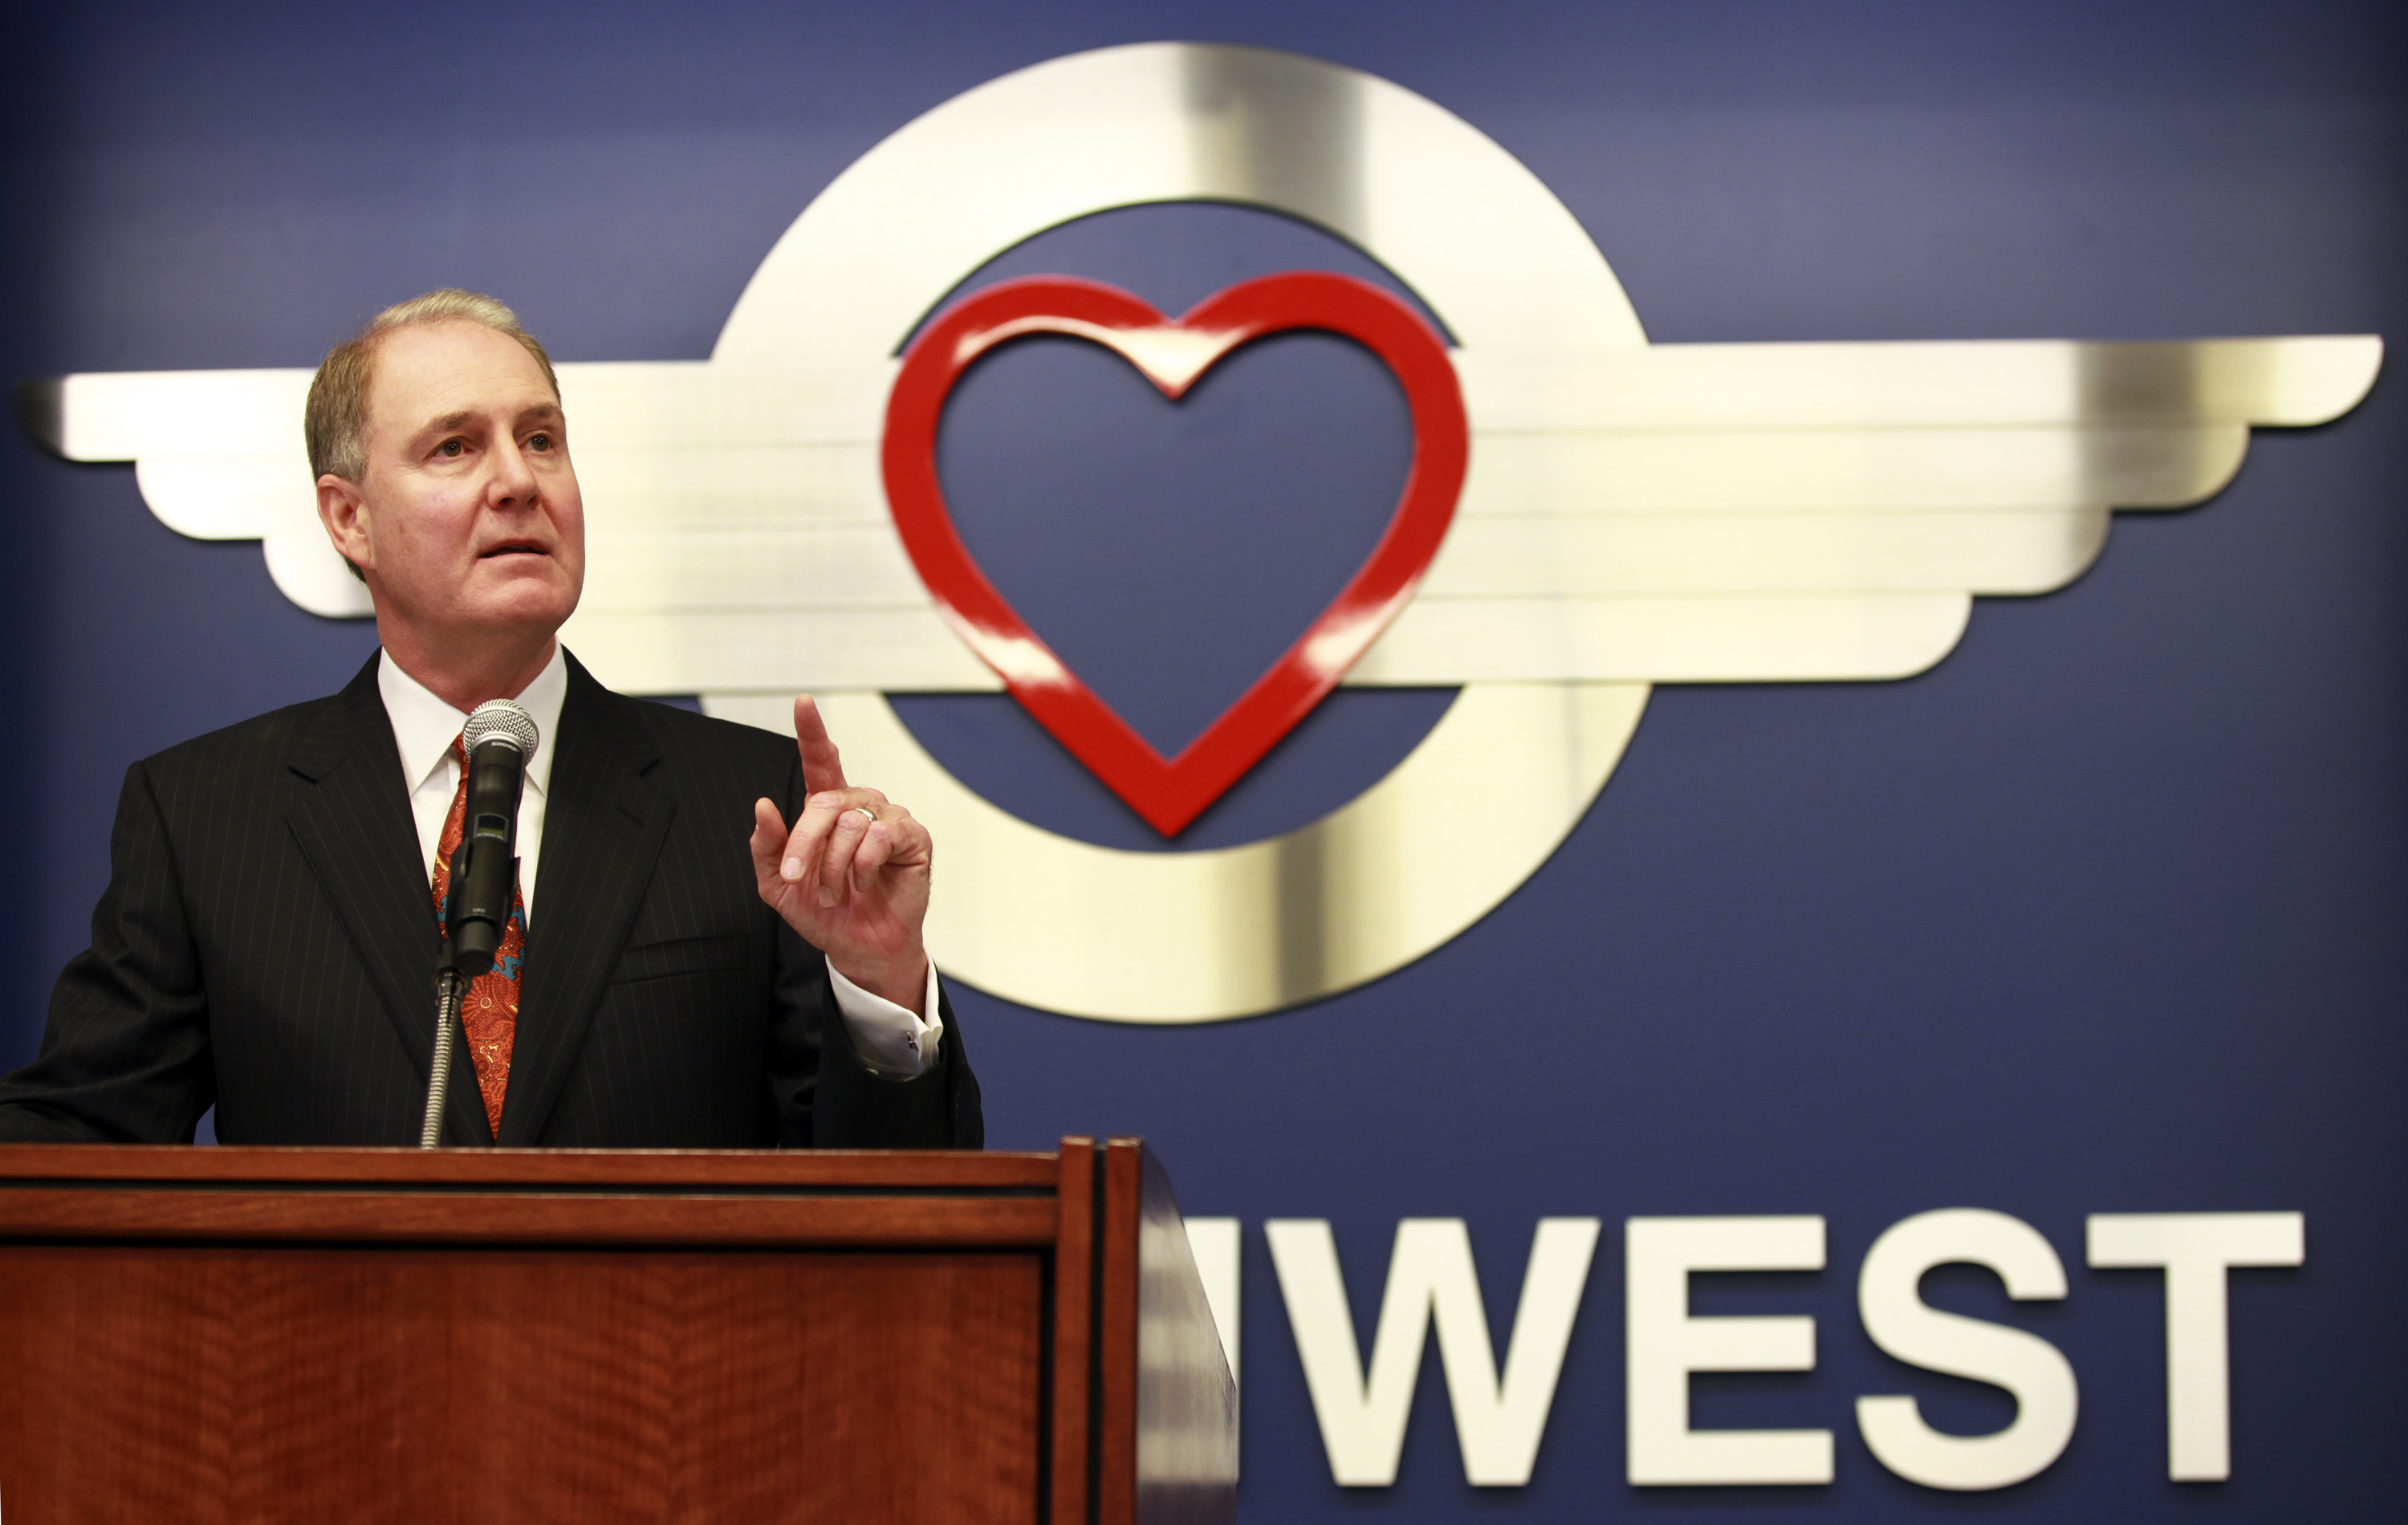 Southwest Airlines Agrees to Buy AirTran For $1.4 Billion